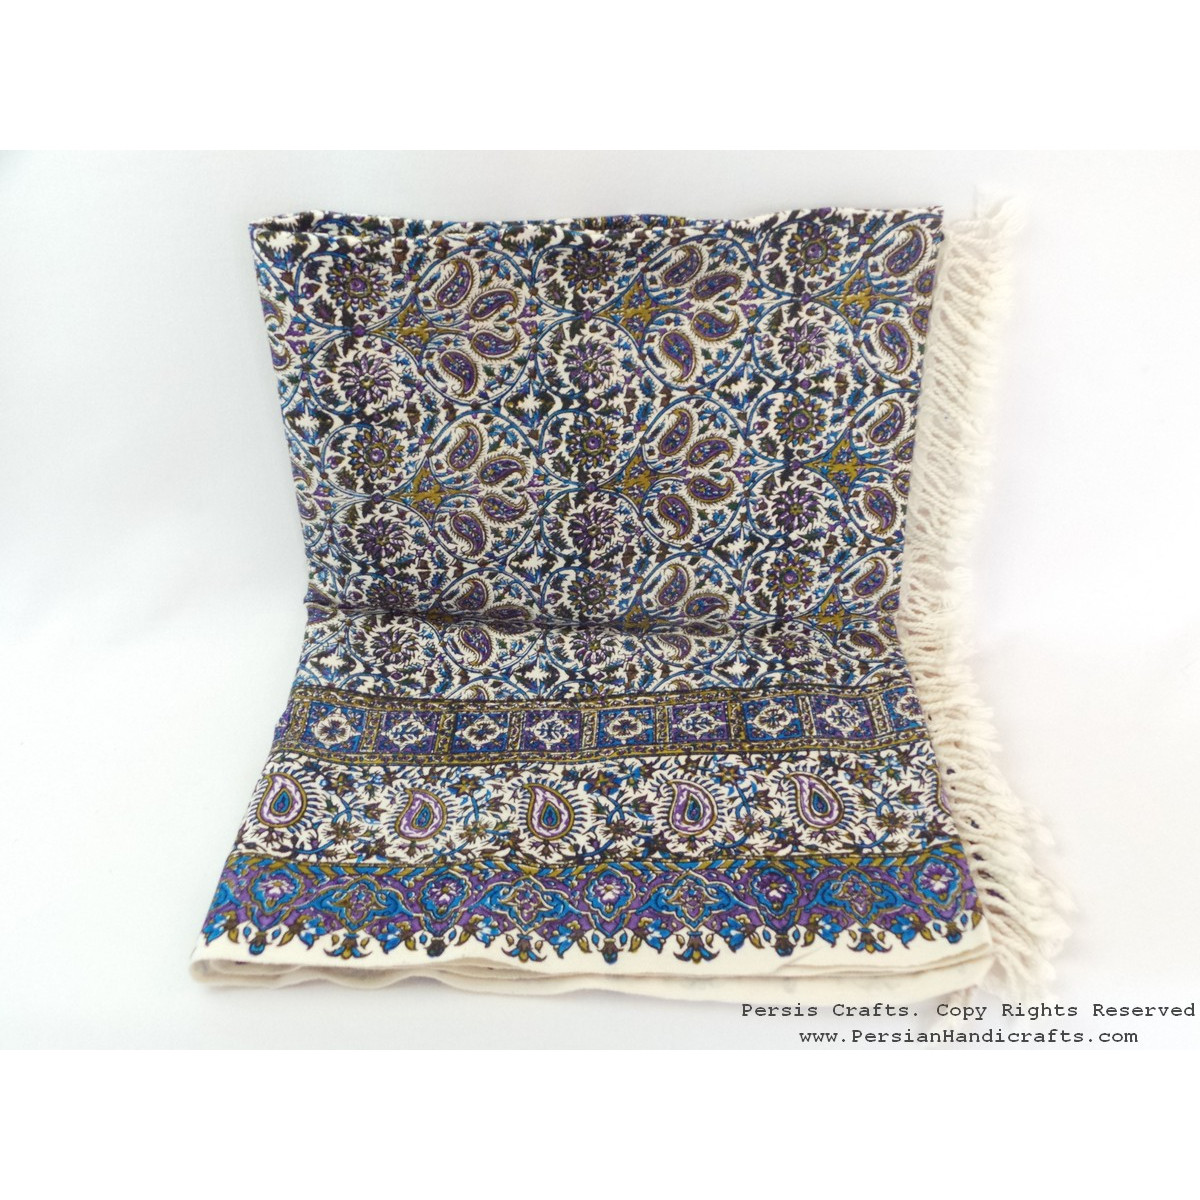 Persian Tapestry (Ghalamkar) Tablecloth - HGH3610-Persian Handicrafts